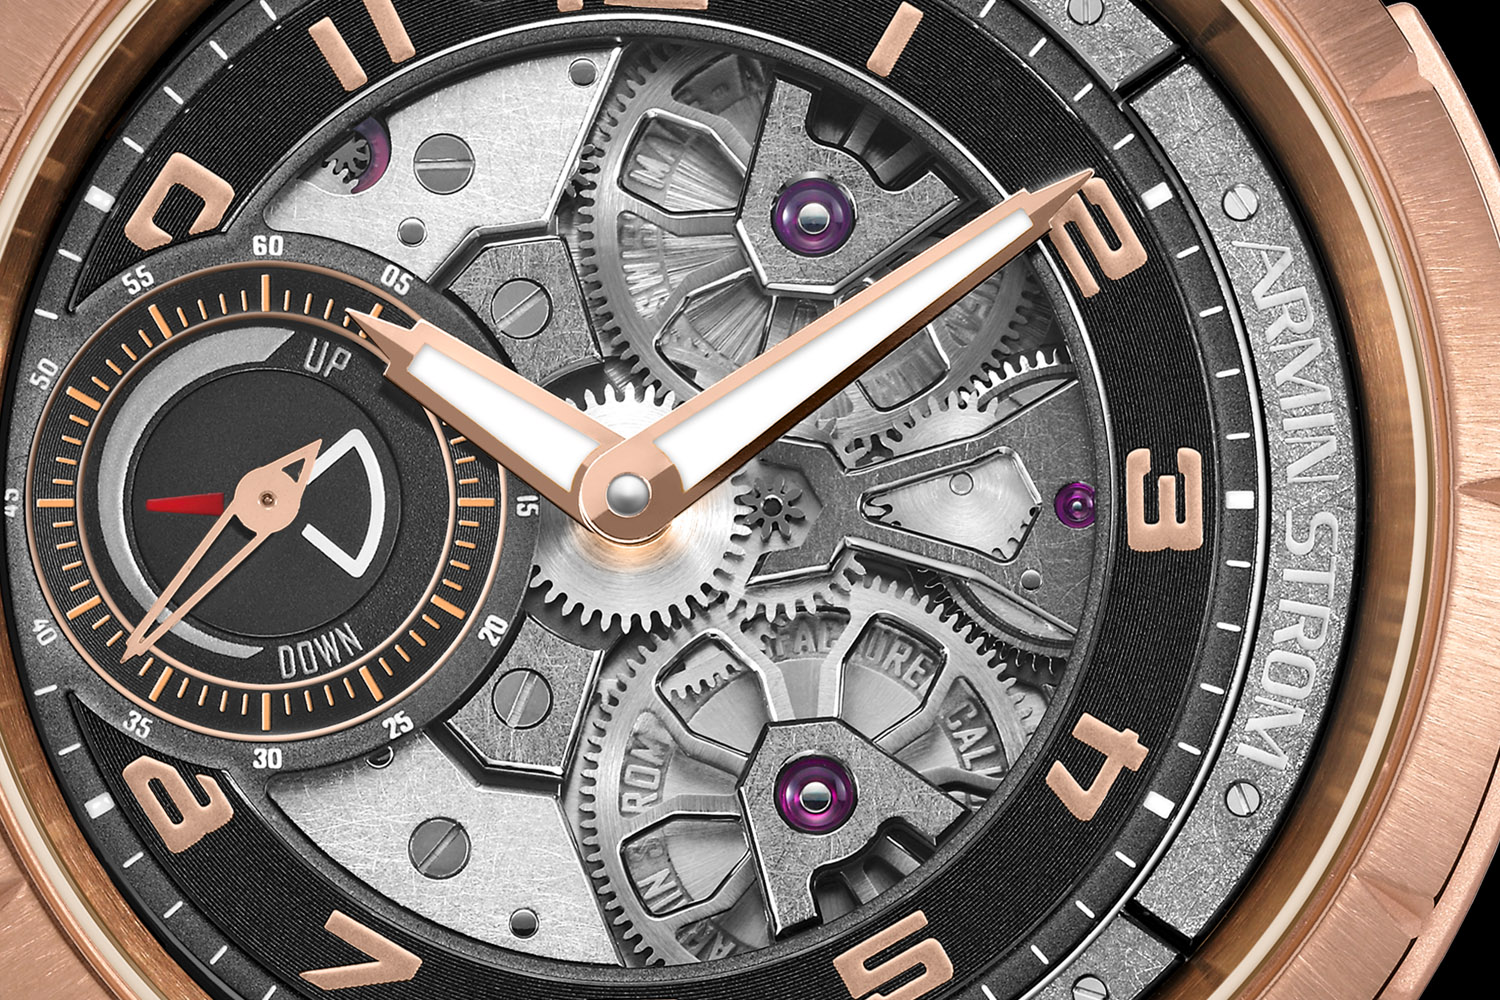 armin-strom-edge-double-barrel-rose-gold-4